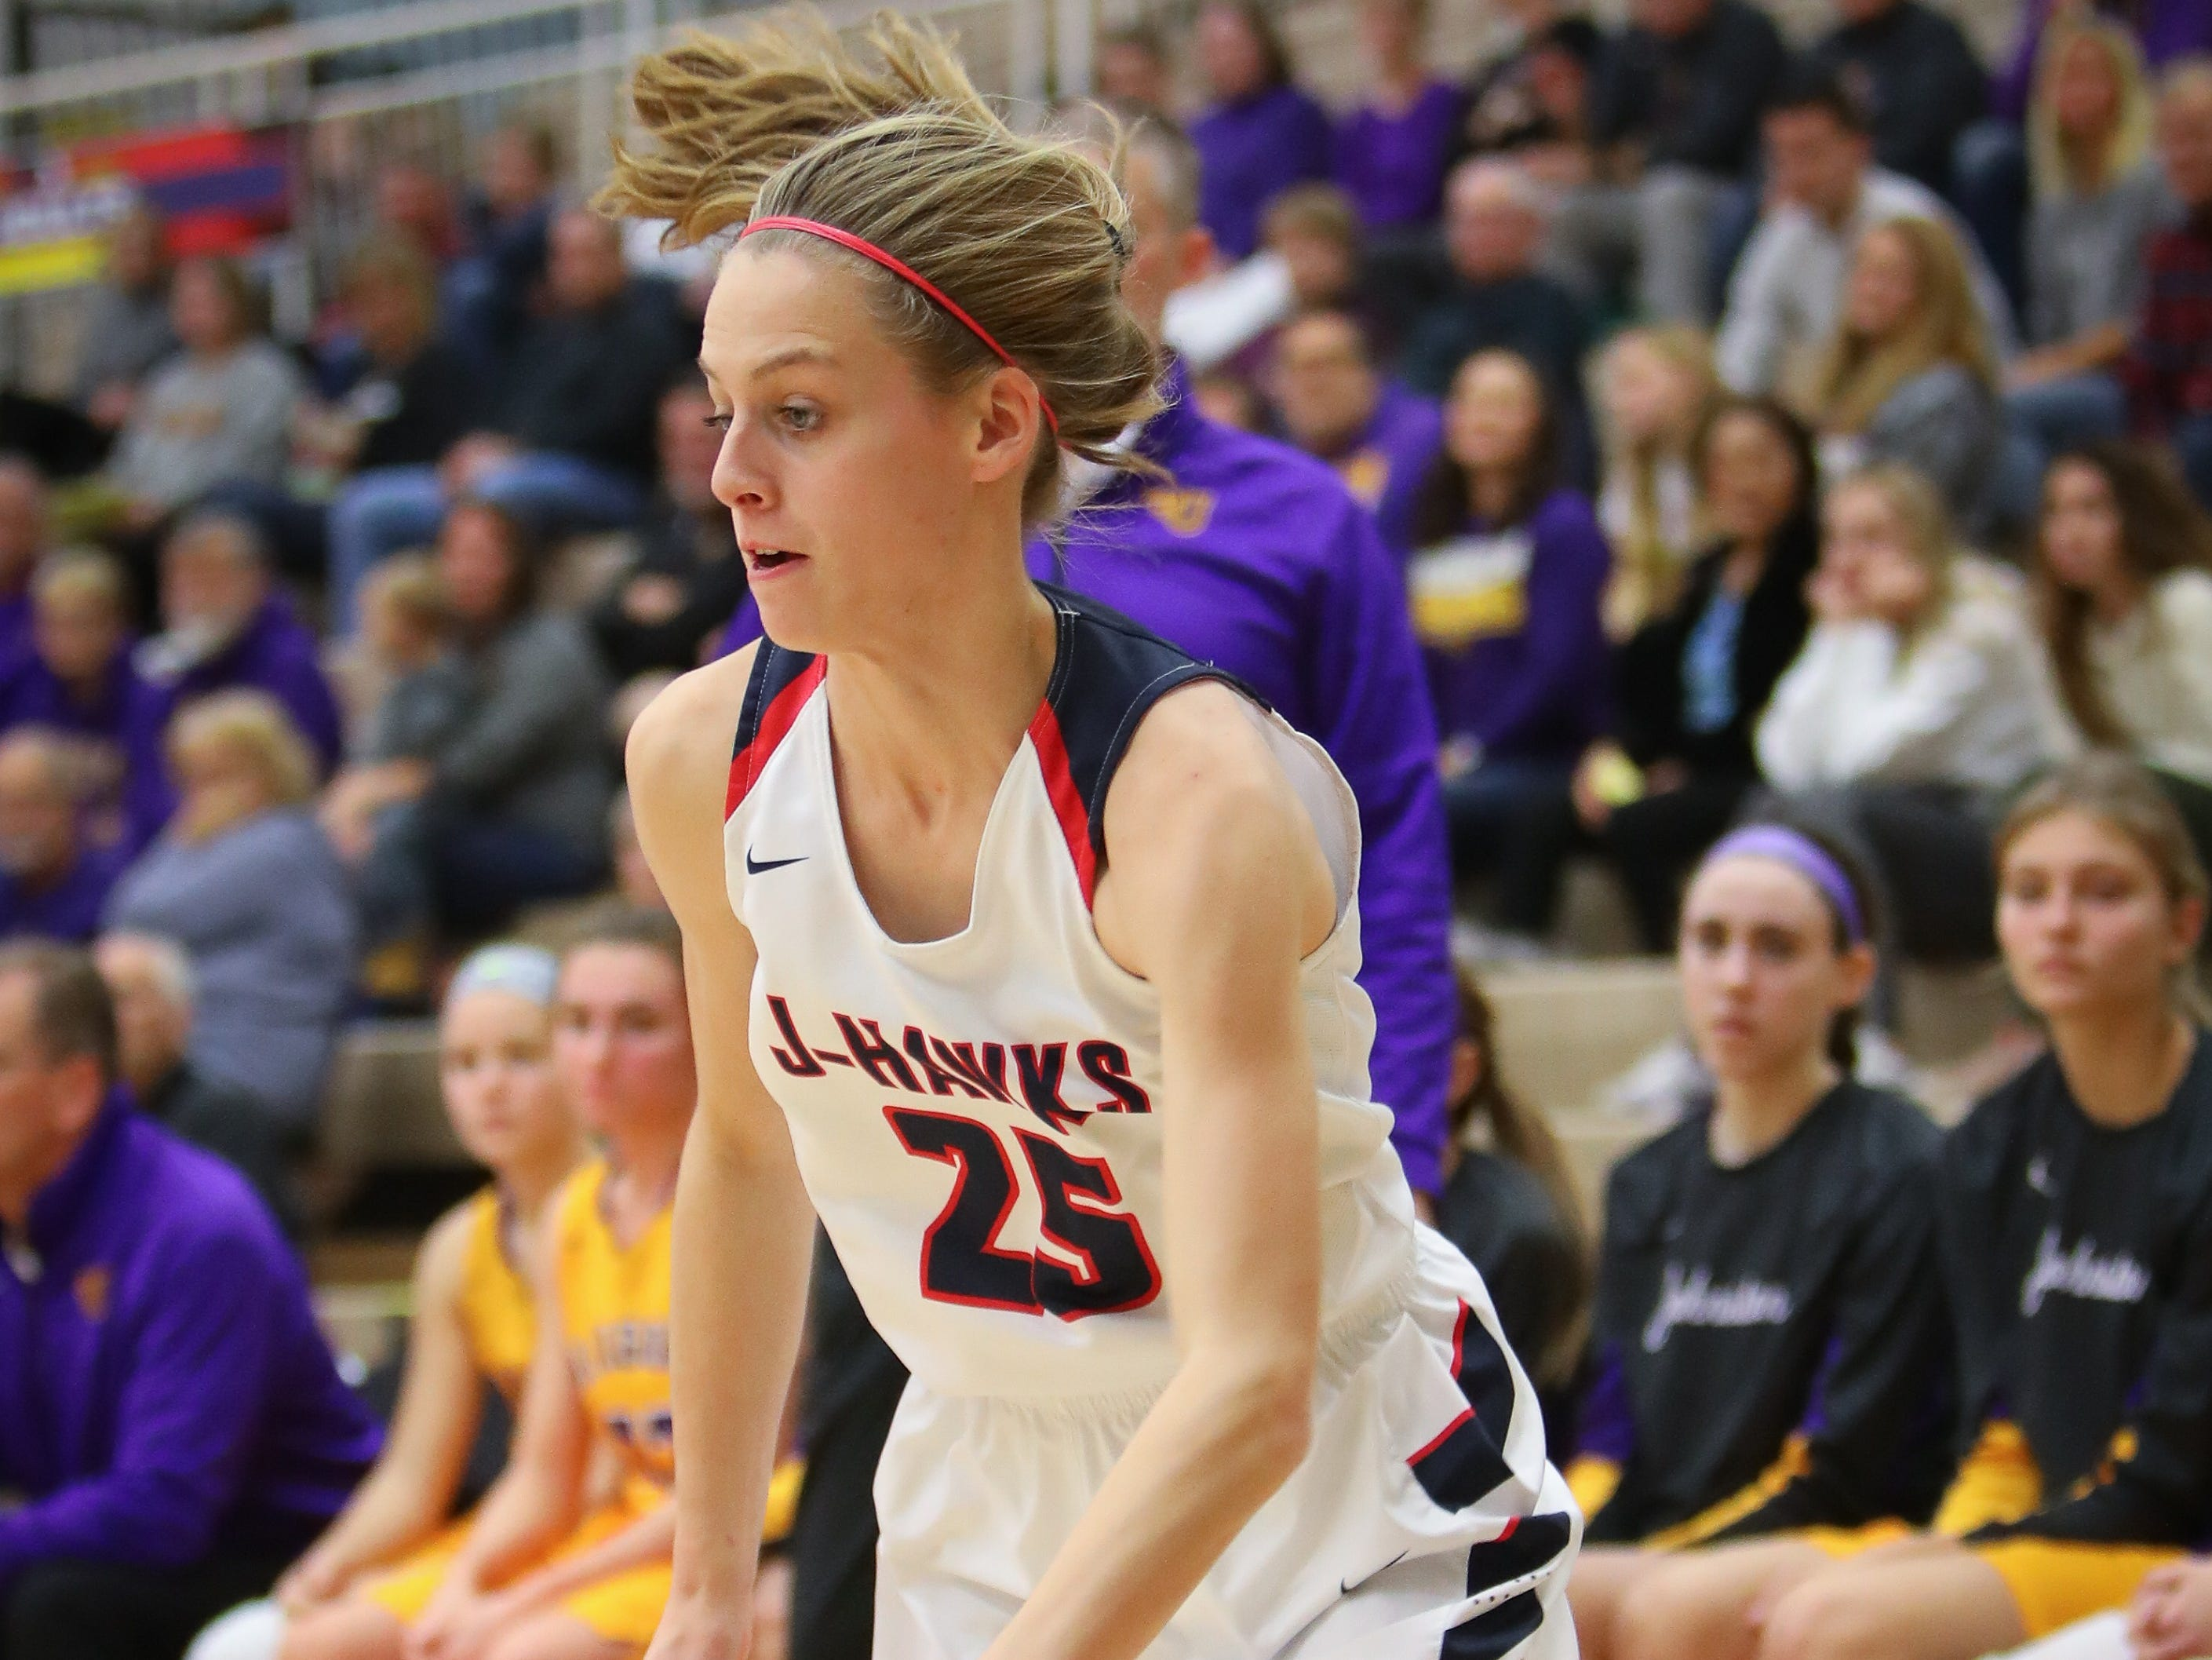 Urbandale sophomore Macy Gaskill drives the ball to the hoop during a girls high school basketball game between the Johnston Dragons and the Urbandale J-Hawks at Urbandale High School on Dec. 18, 2018 in Urbandale, Iowa.